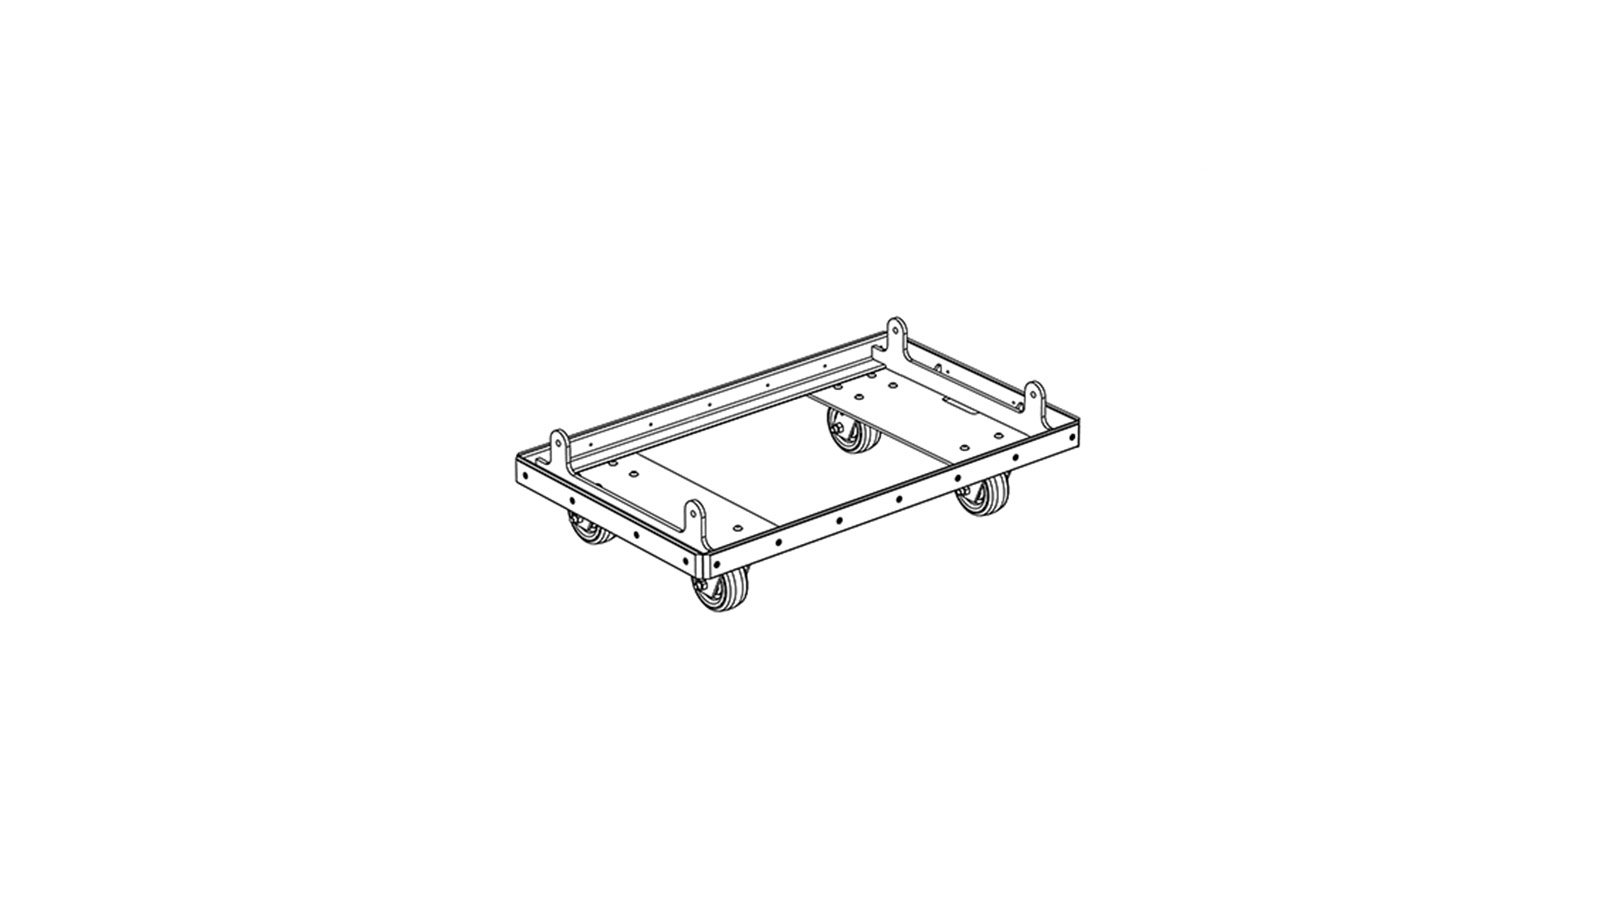 hight resolution of caster frame kit used to transport up to 4 lyon highpart number 40 232 045 01